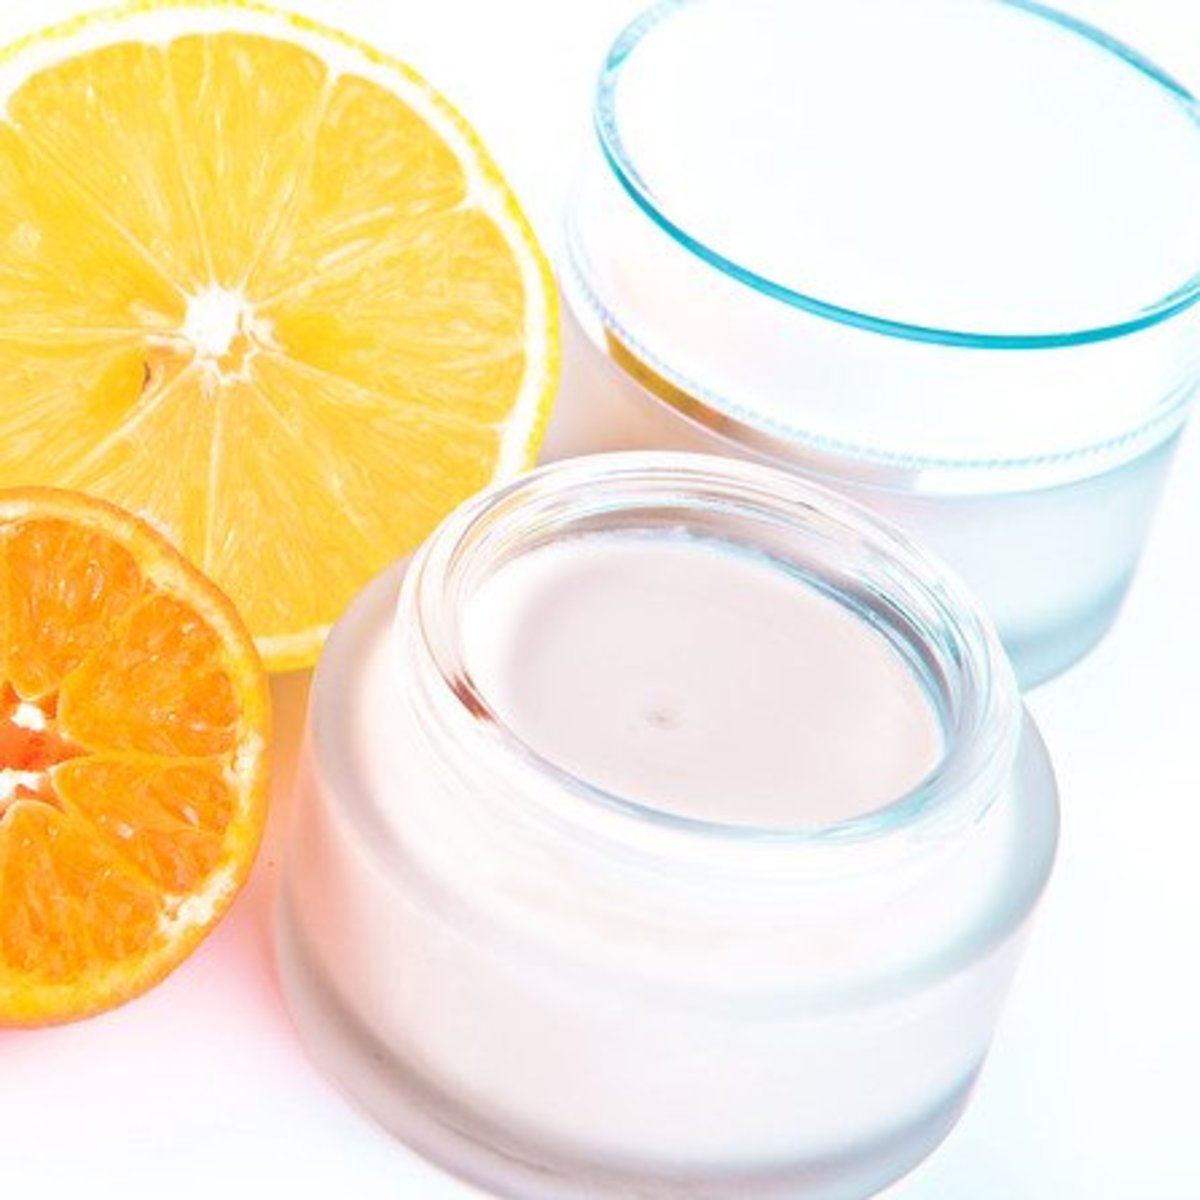 Can Lemon Juice Really Lighten Skin?